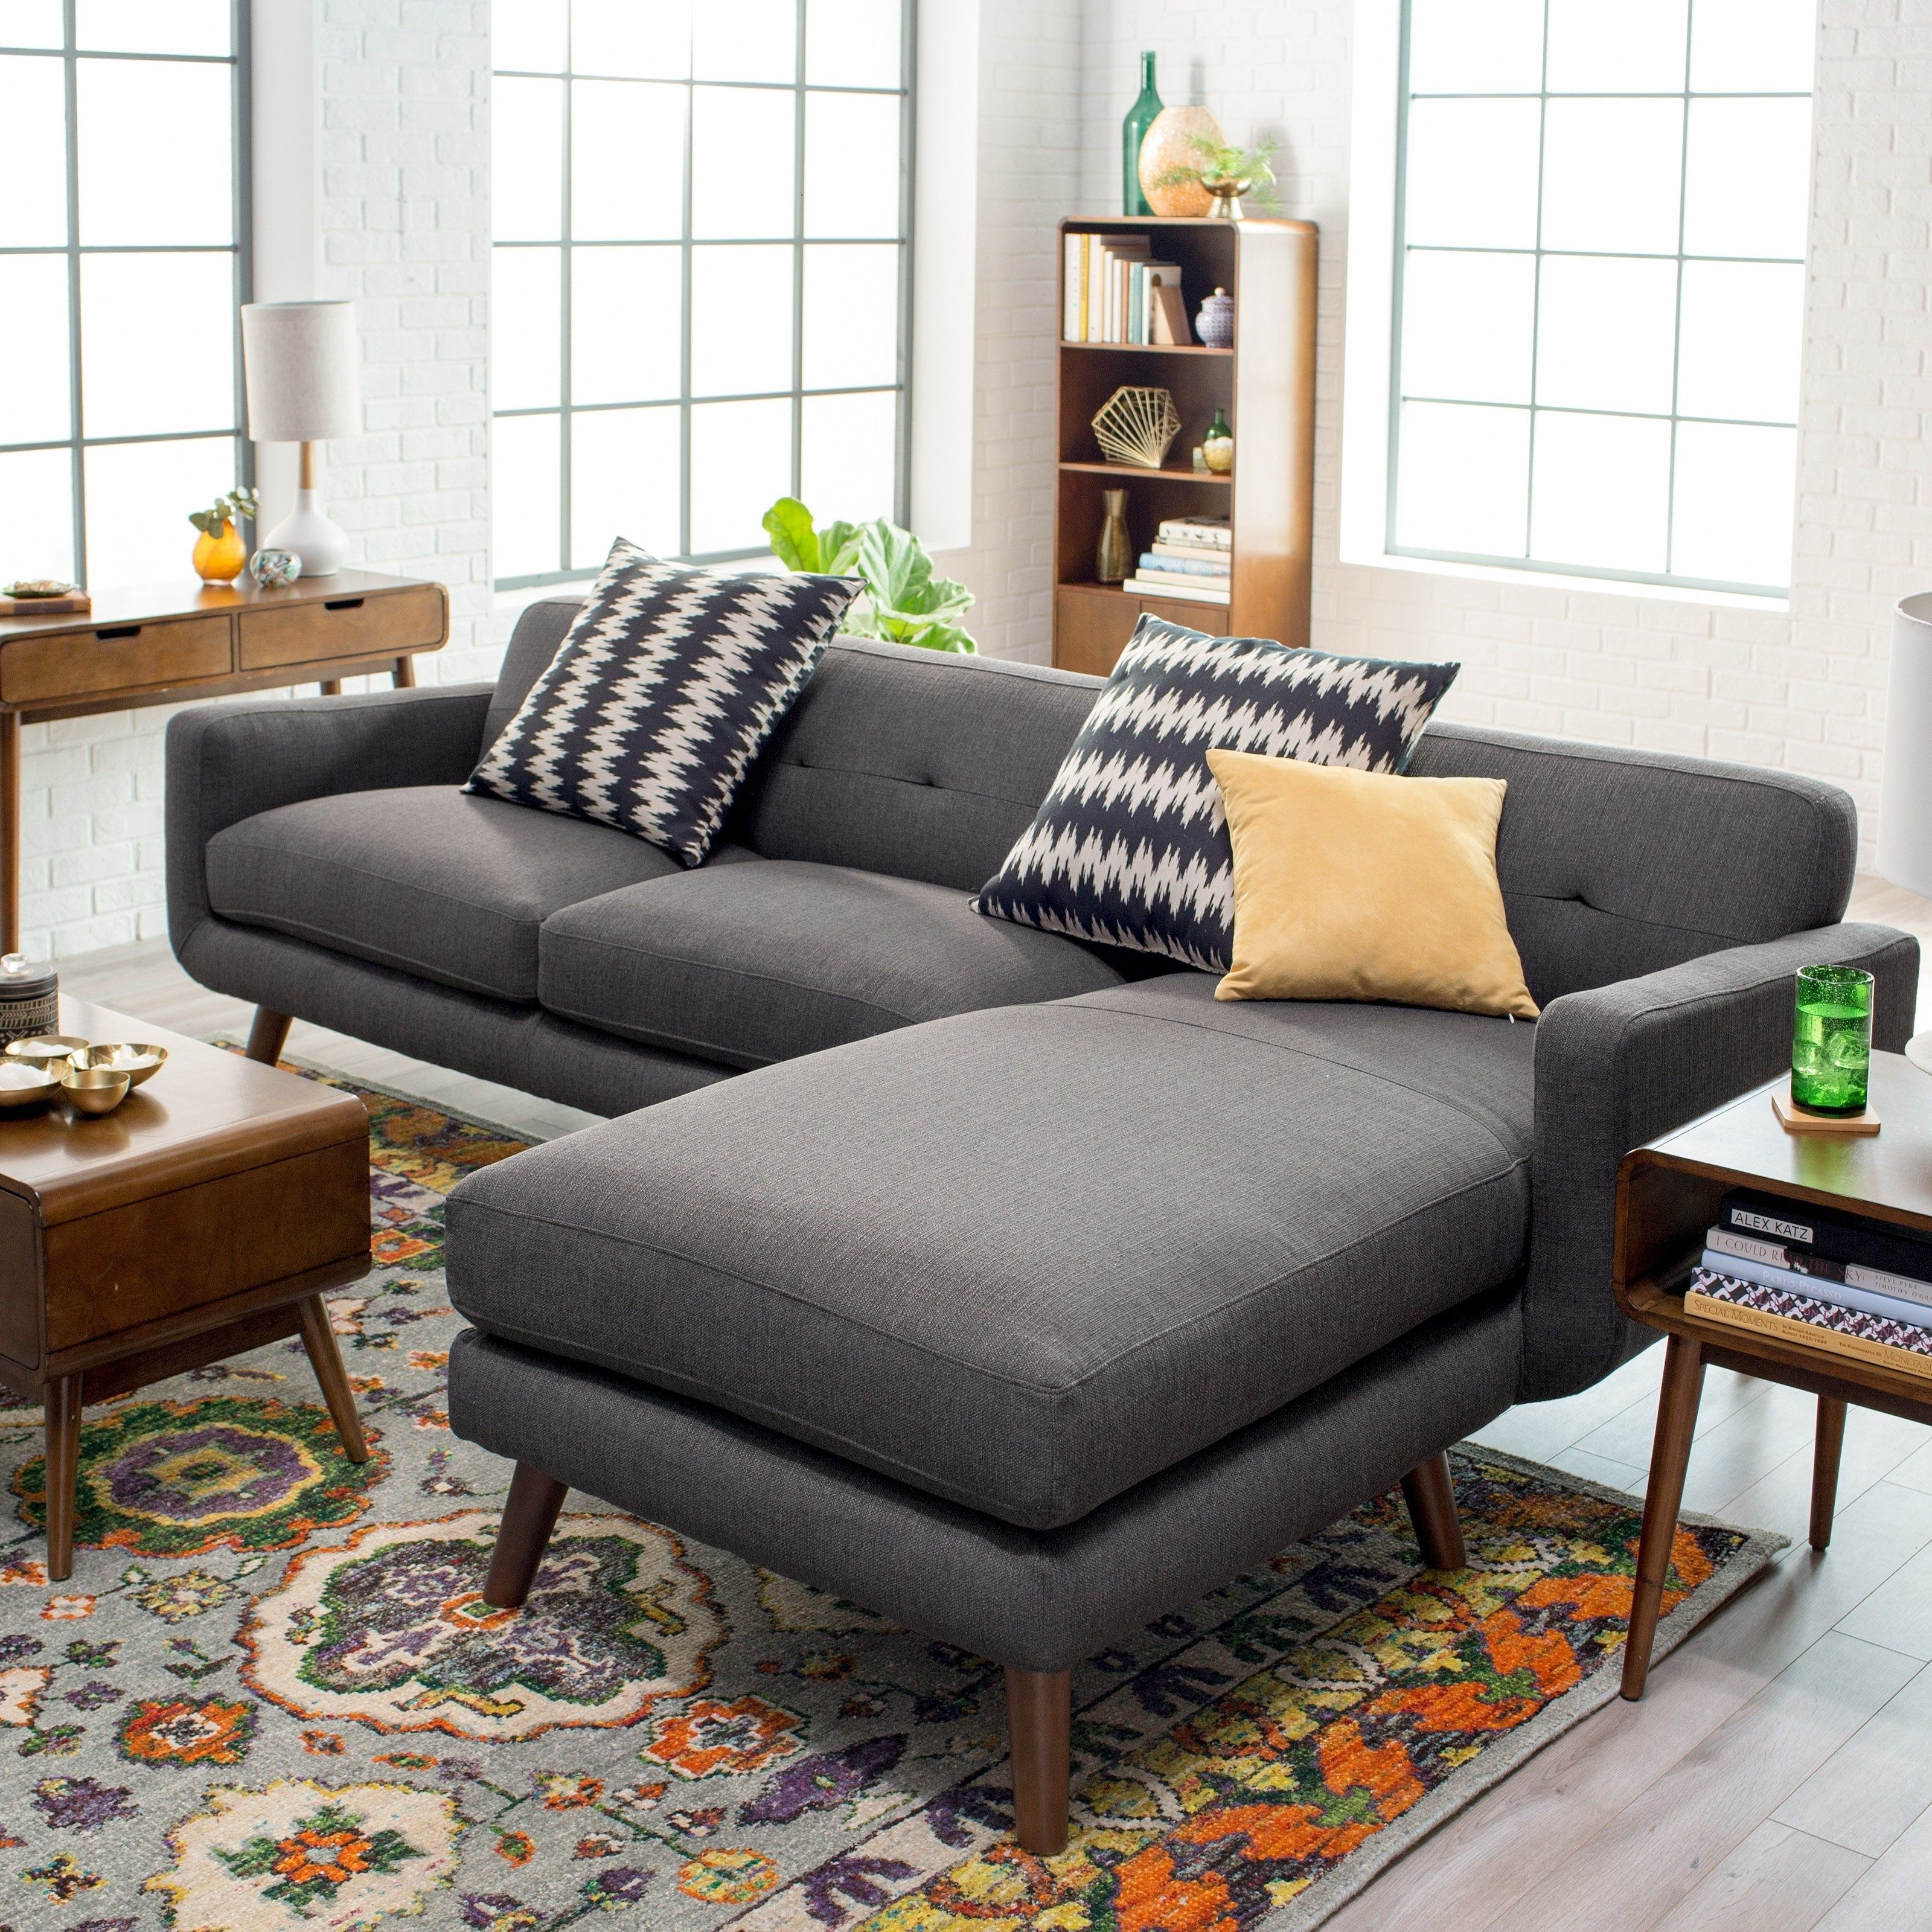 10 Inspirations Sectional Sofas For Small Doorways Sofa Ideas Apartment Size Furniture Modern Sofa Sectional Sofa Buying Guide